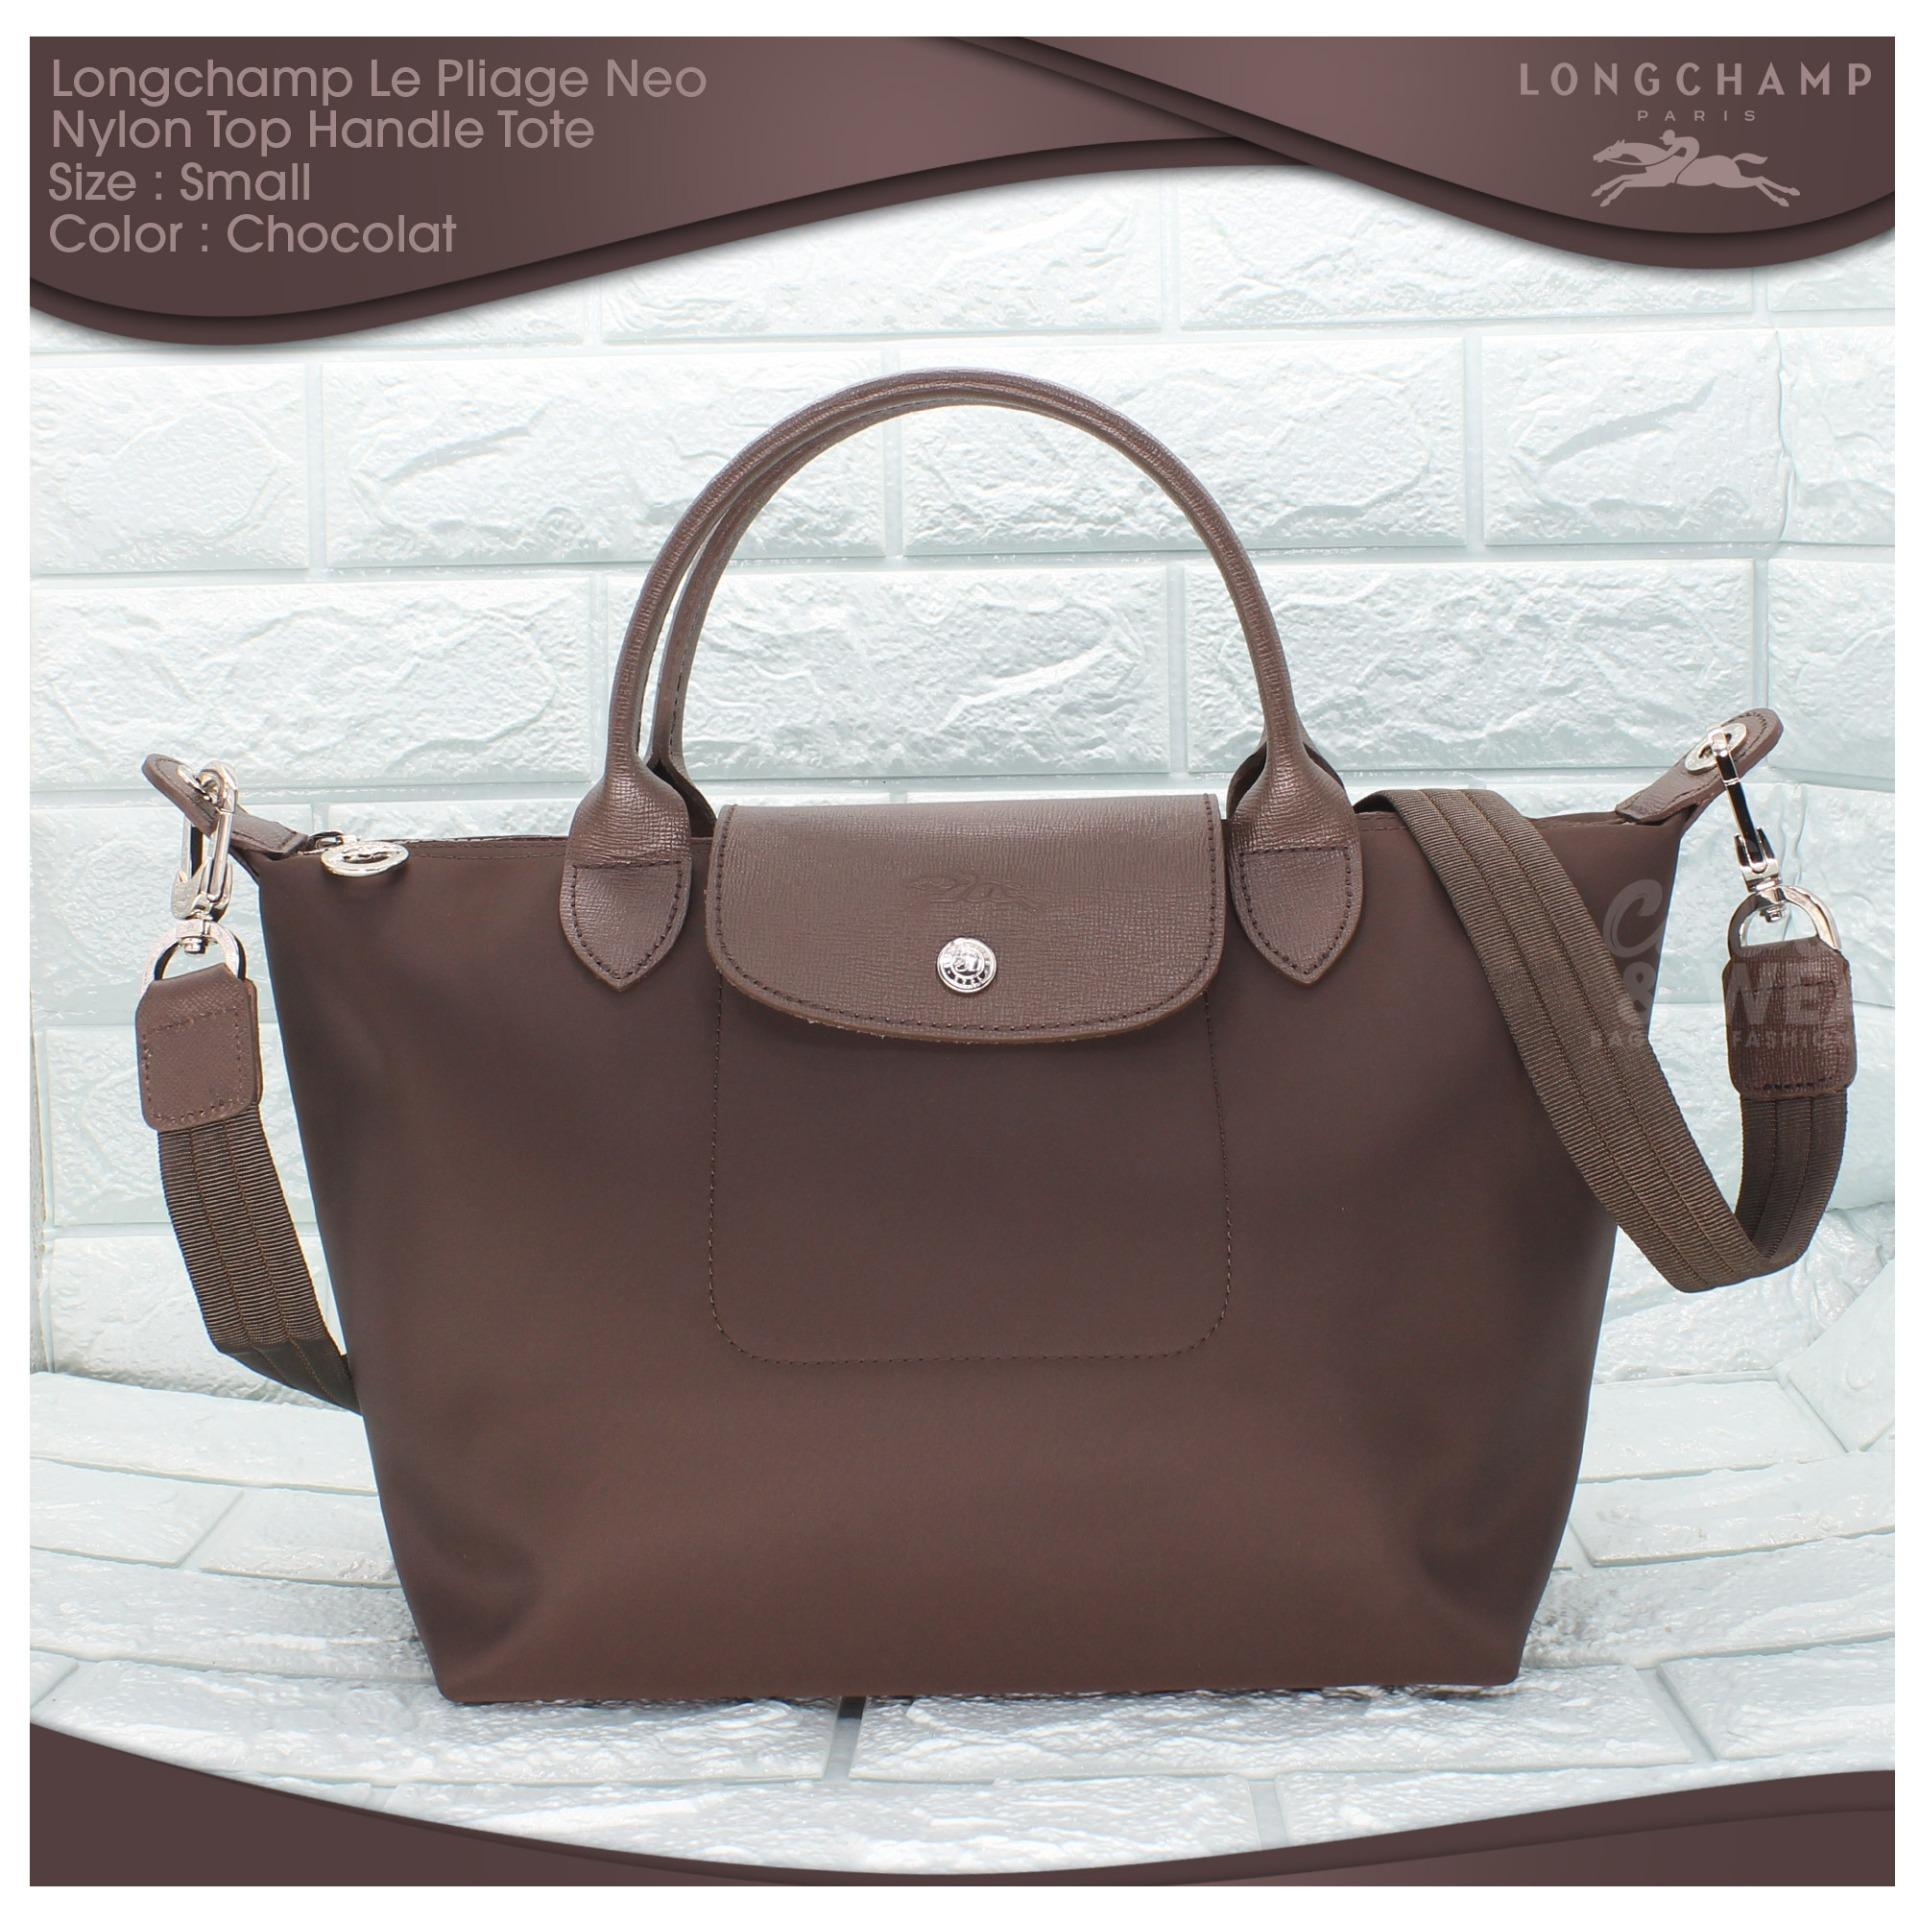 Authentic Longchamp Made In France Le Pliage Neo Small Top Handle Tote -  Chocolat